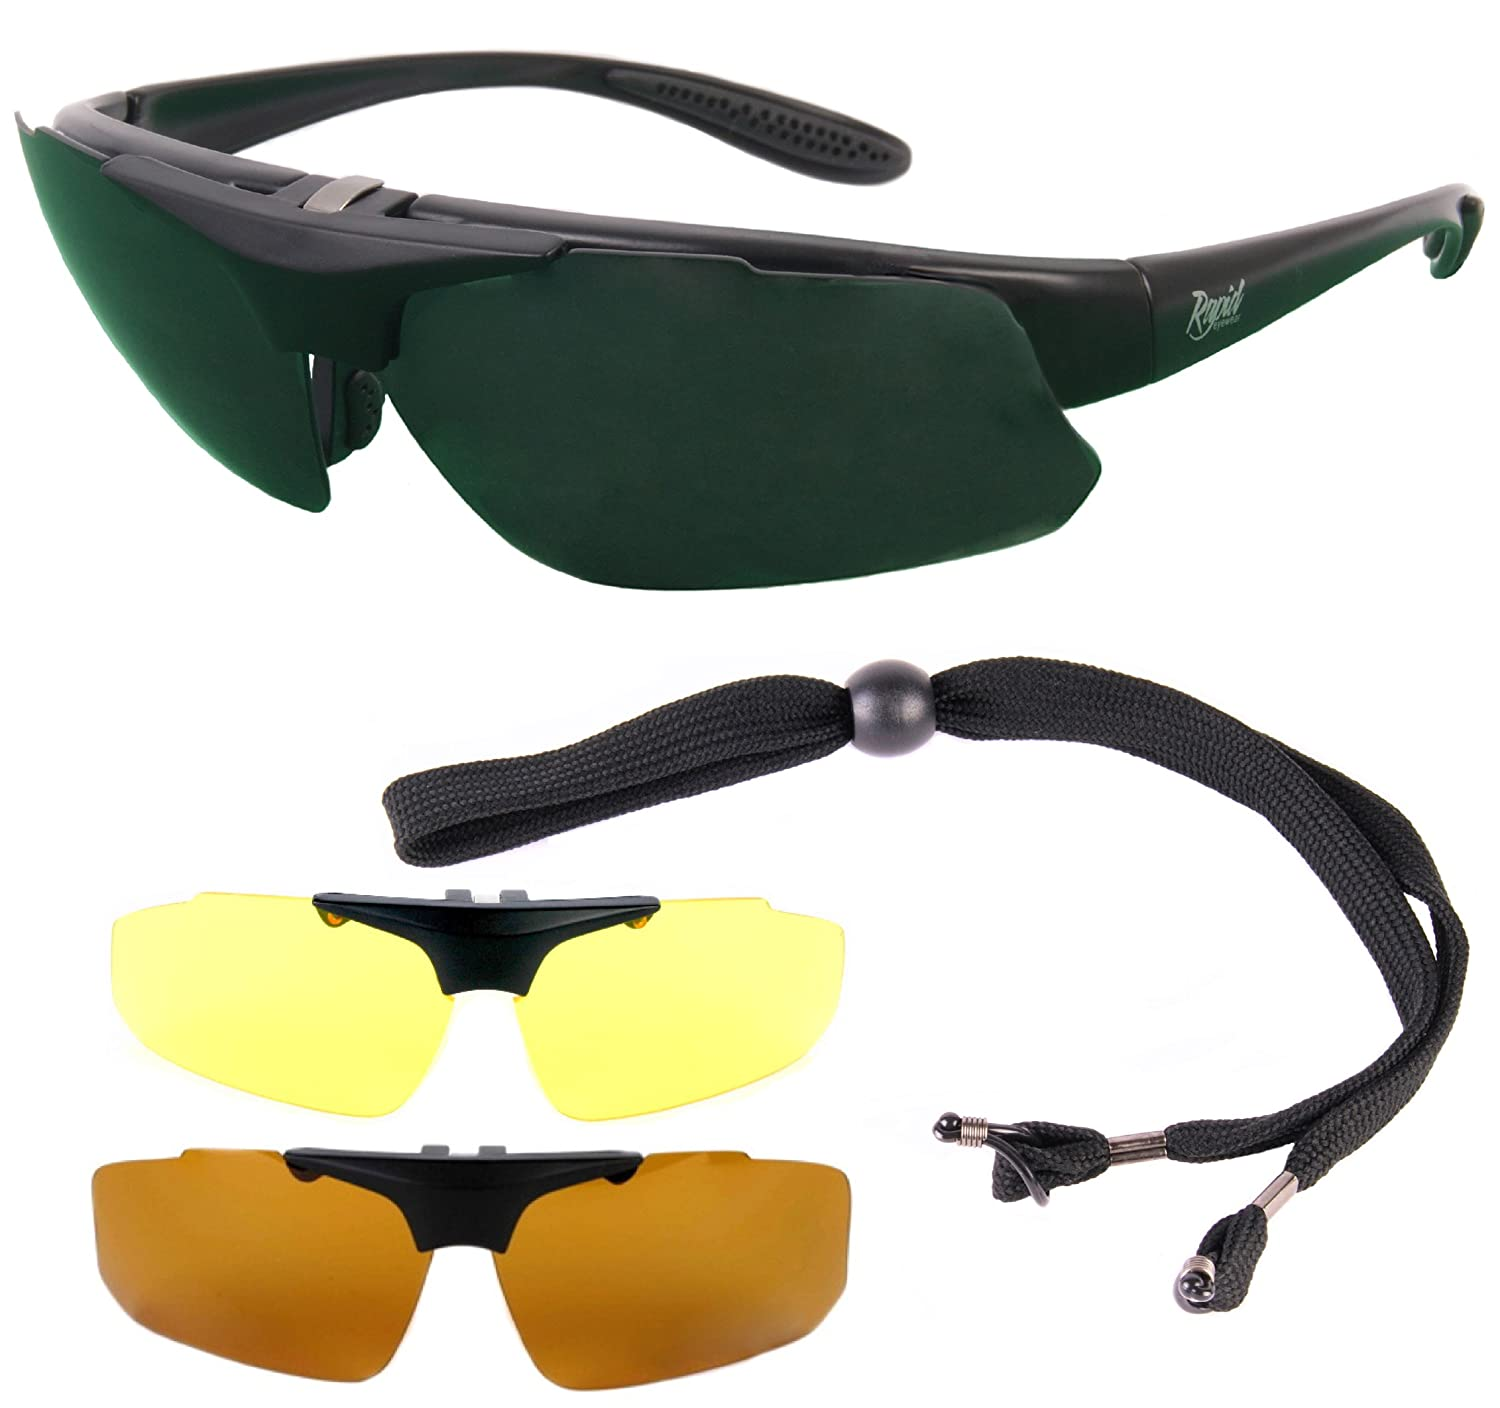 Rapid Eyewear Black Rx Golf Sunglasses Frame for Prescription Spectacle Wearers, with Interchangeable Polarized Lenses. Suitable for Distance, Bifocal Varifocal Correction. Glasses for Men Women